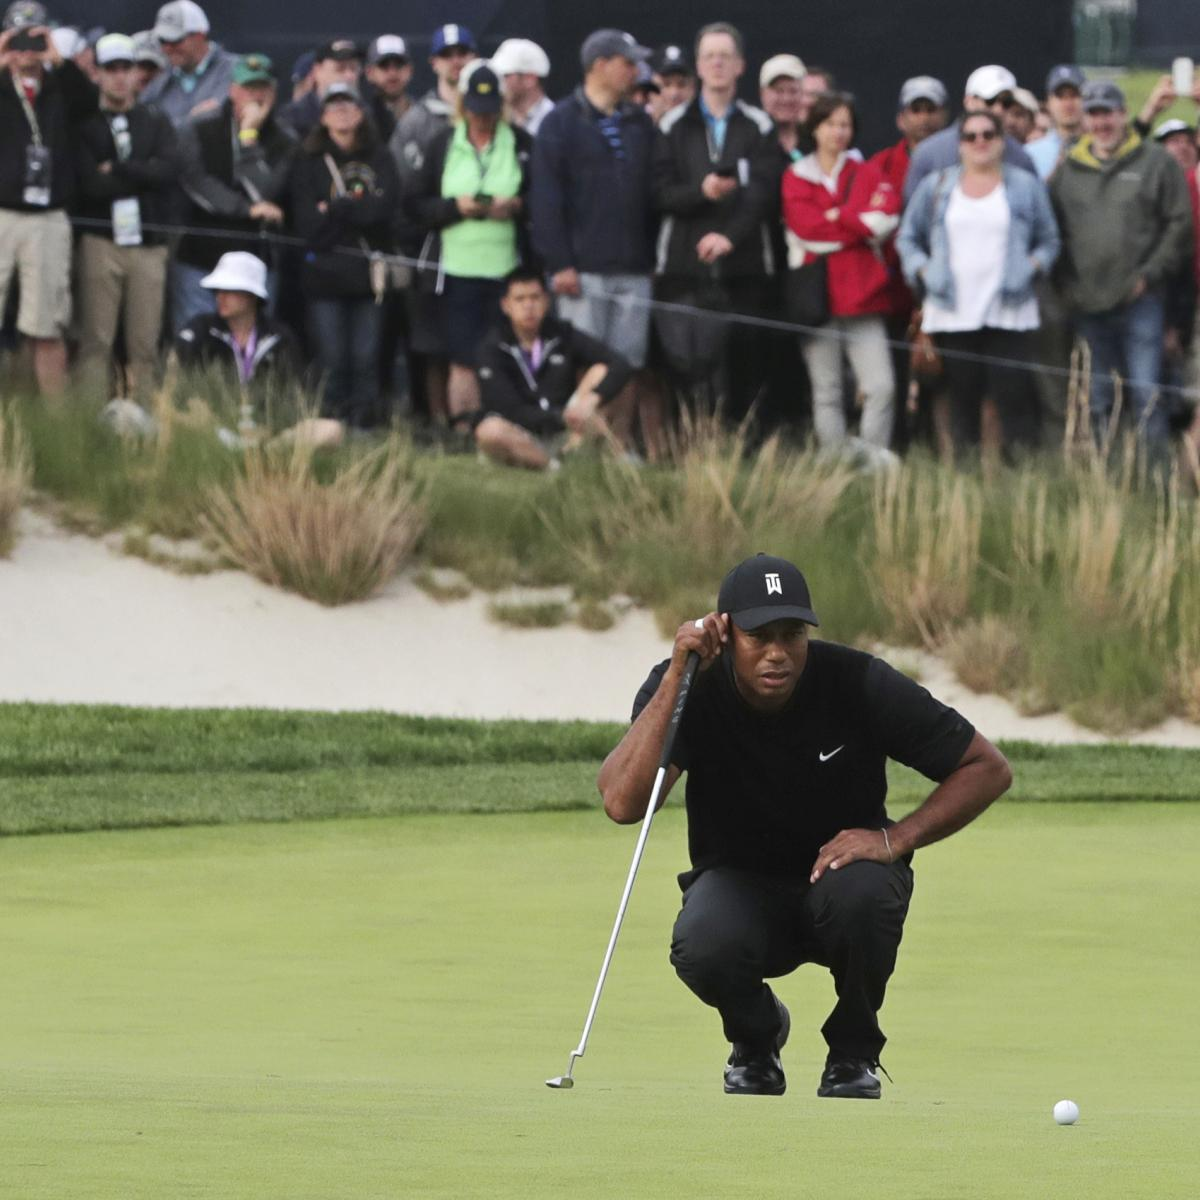 Tiger Woods will tune up for the 2019 U.S. Open at the house that Jack Nicklaus built. On Thursday, Woods announced he will participate in the Memorial Tournament in Dublin, Ohio, prior to his pursuit of a second major championship of the year...